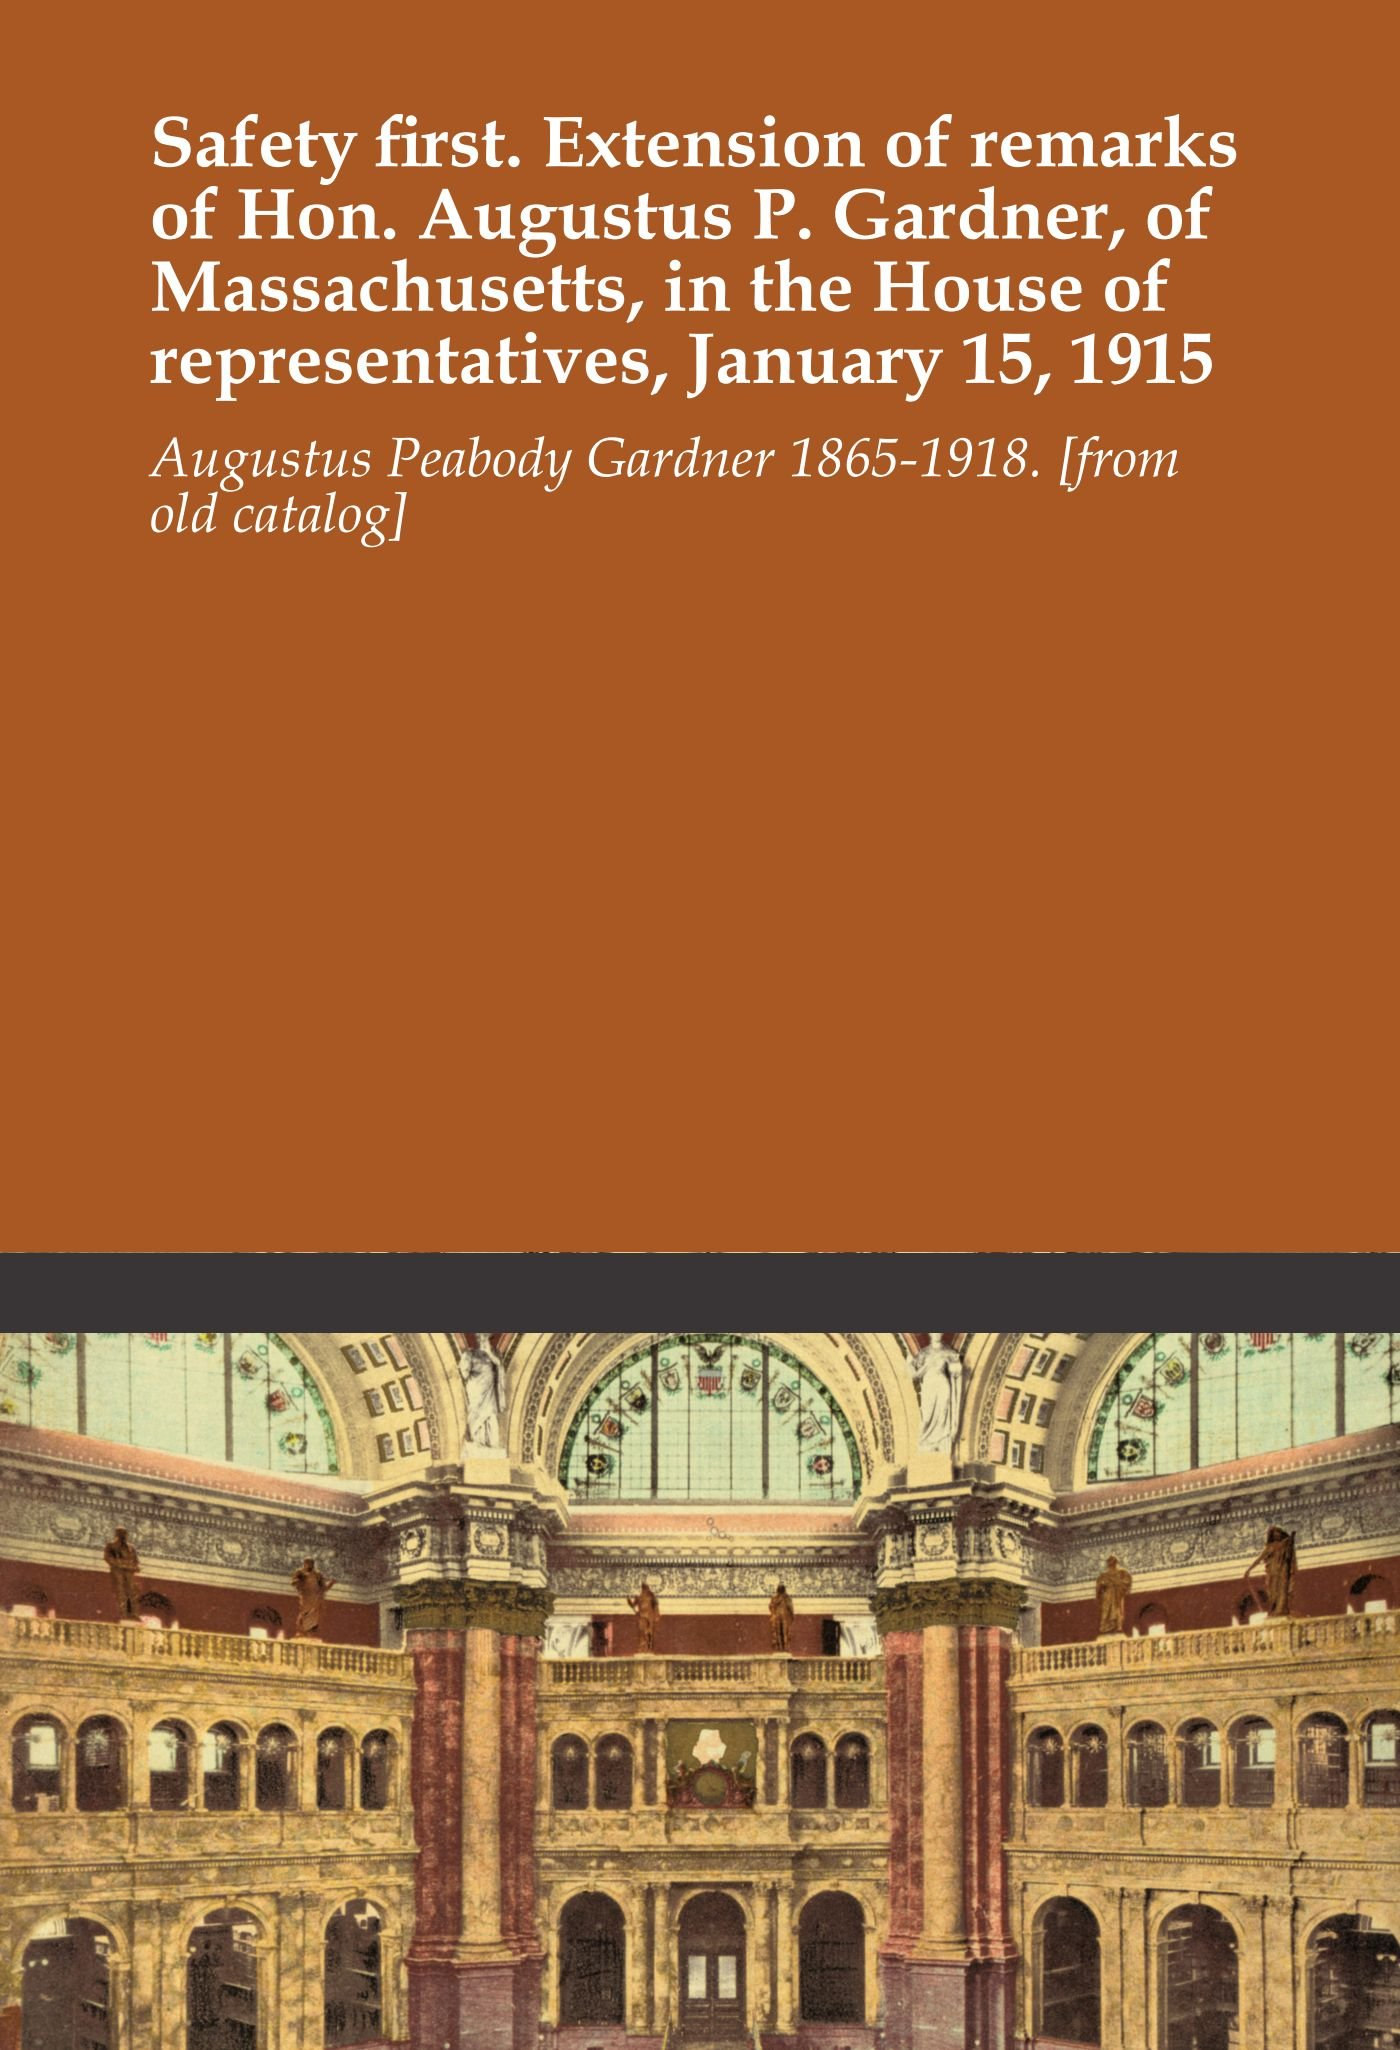 Download Safety first. Extension of remarks of Hon. Augustus P. Gardner, of Massachusetts, in the House of representatives, January 15, 1915 pdf